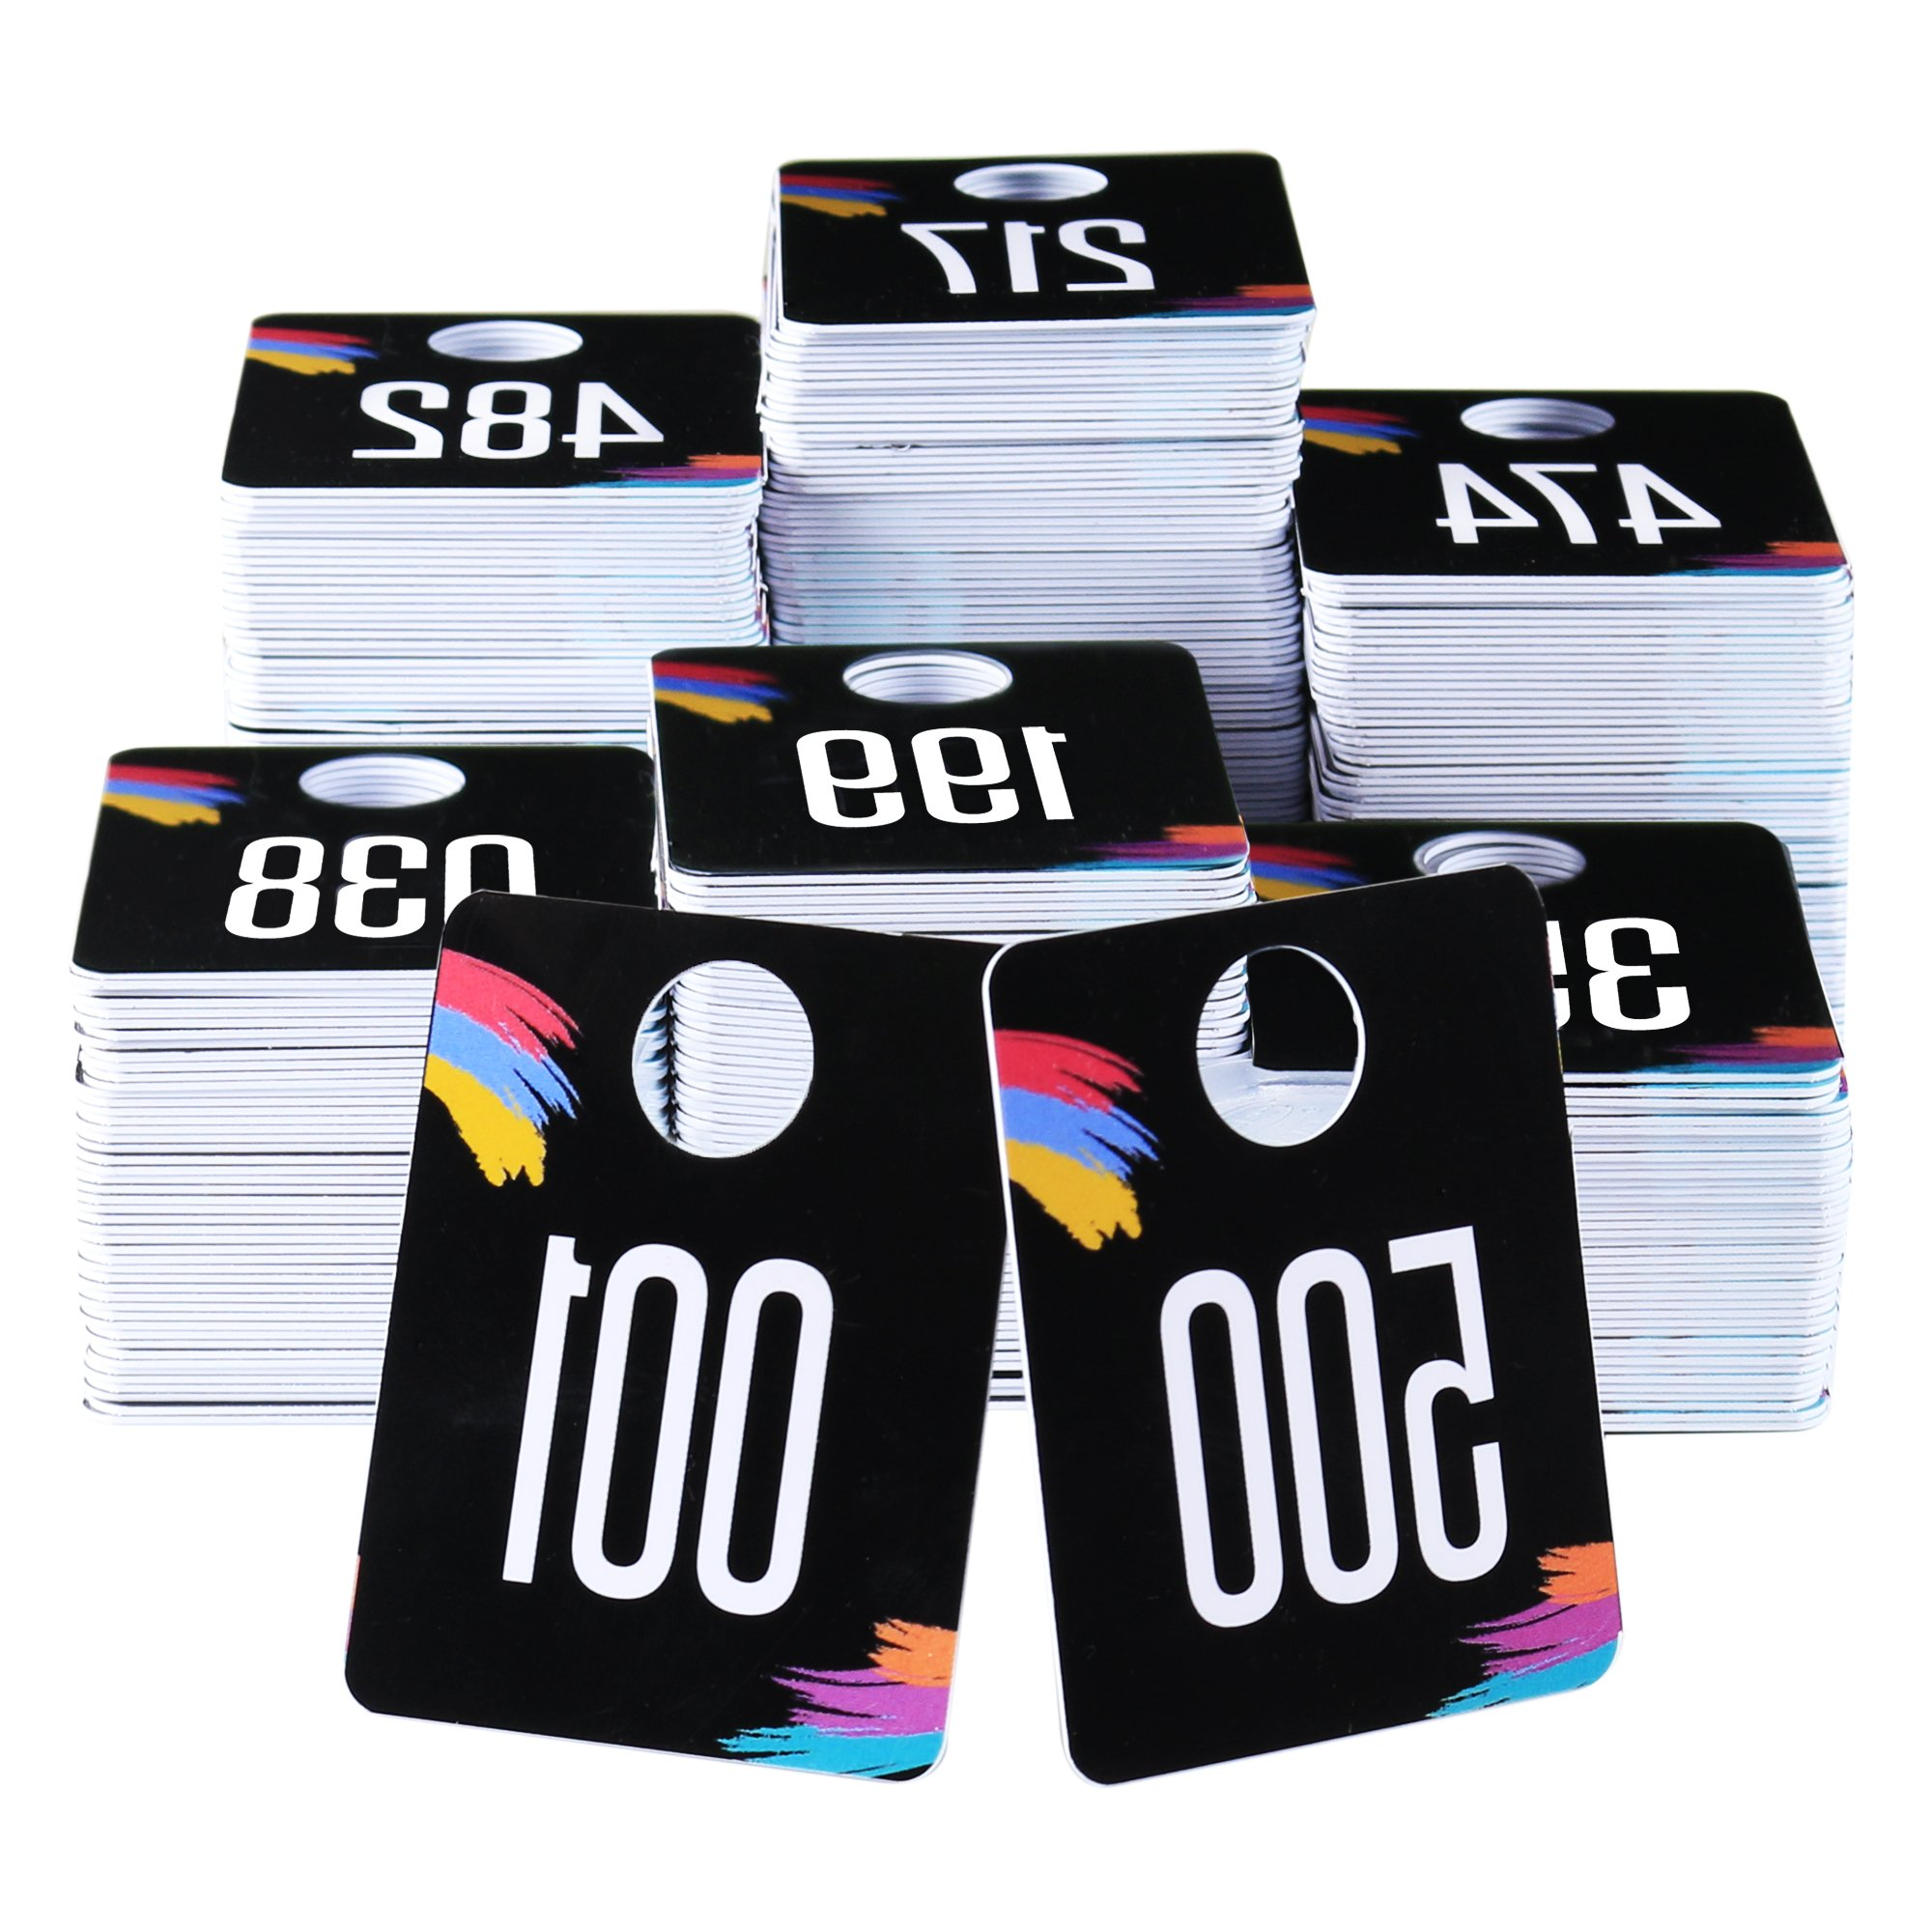 500 Tags - Live Sale Plastic Number Tags, Normal and Reverse Mirror Image, Reusable Hanger Cards, 500 Consecutive Numbers, (001-500) by Zilpoo